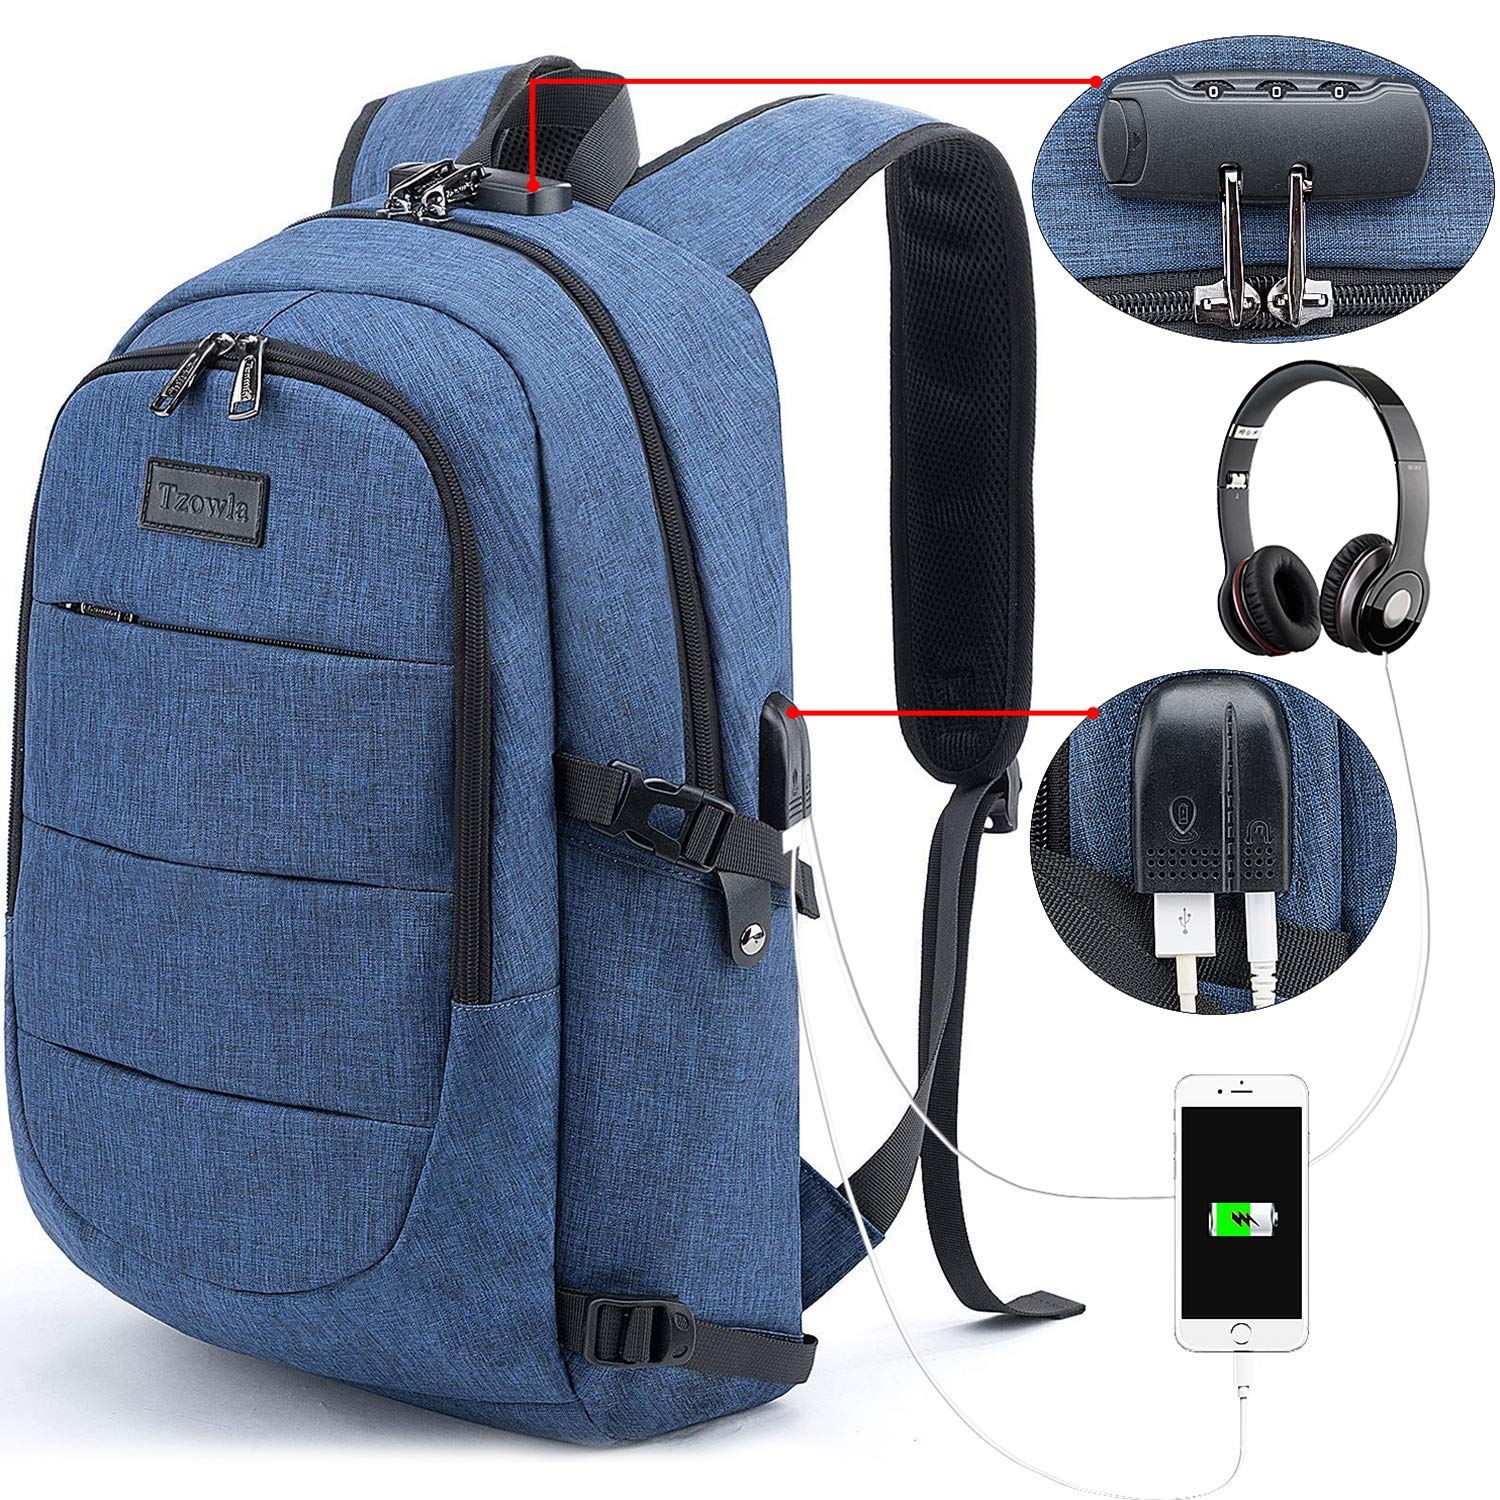 Tzowla Business Laptop Backpack Anti-Theft College Backpack with USB Charging Port and Lock 15.6 Inch Computer Backpacks for Women Men, Casual Hiking Travel Daypack (A-Blue Jeans) by Tzowla